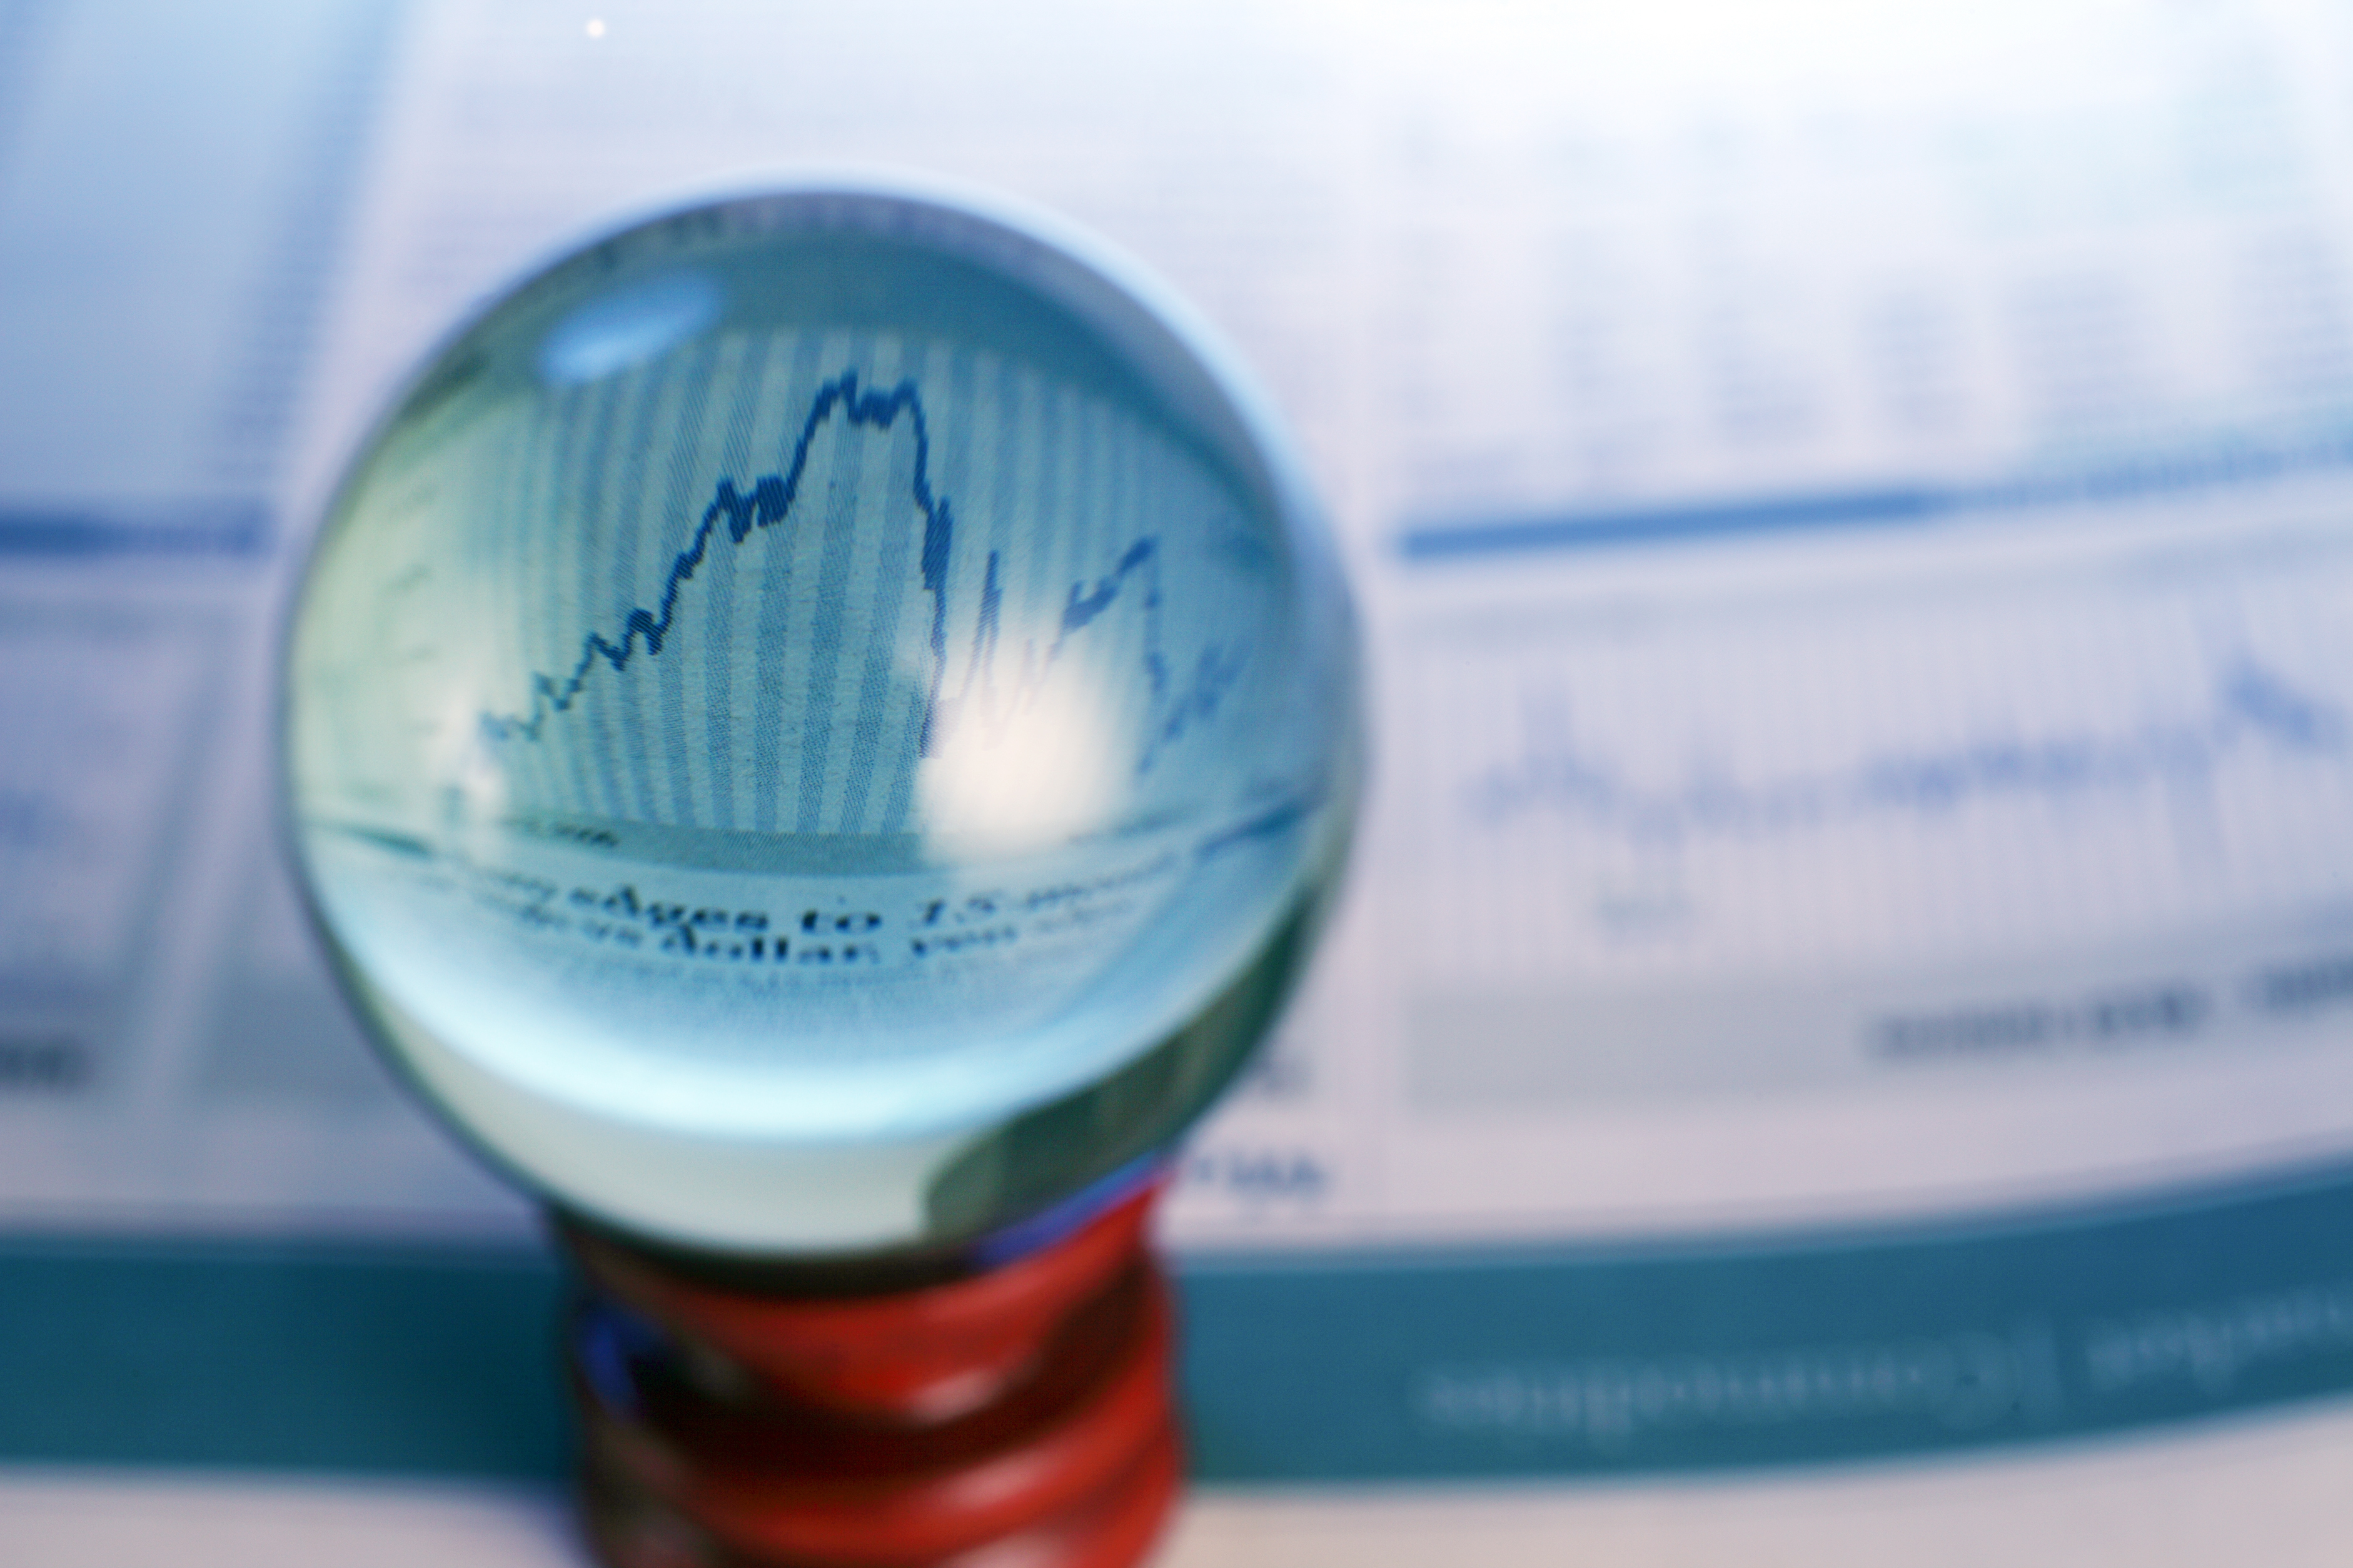 A crystal ball, with a line graph in it.